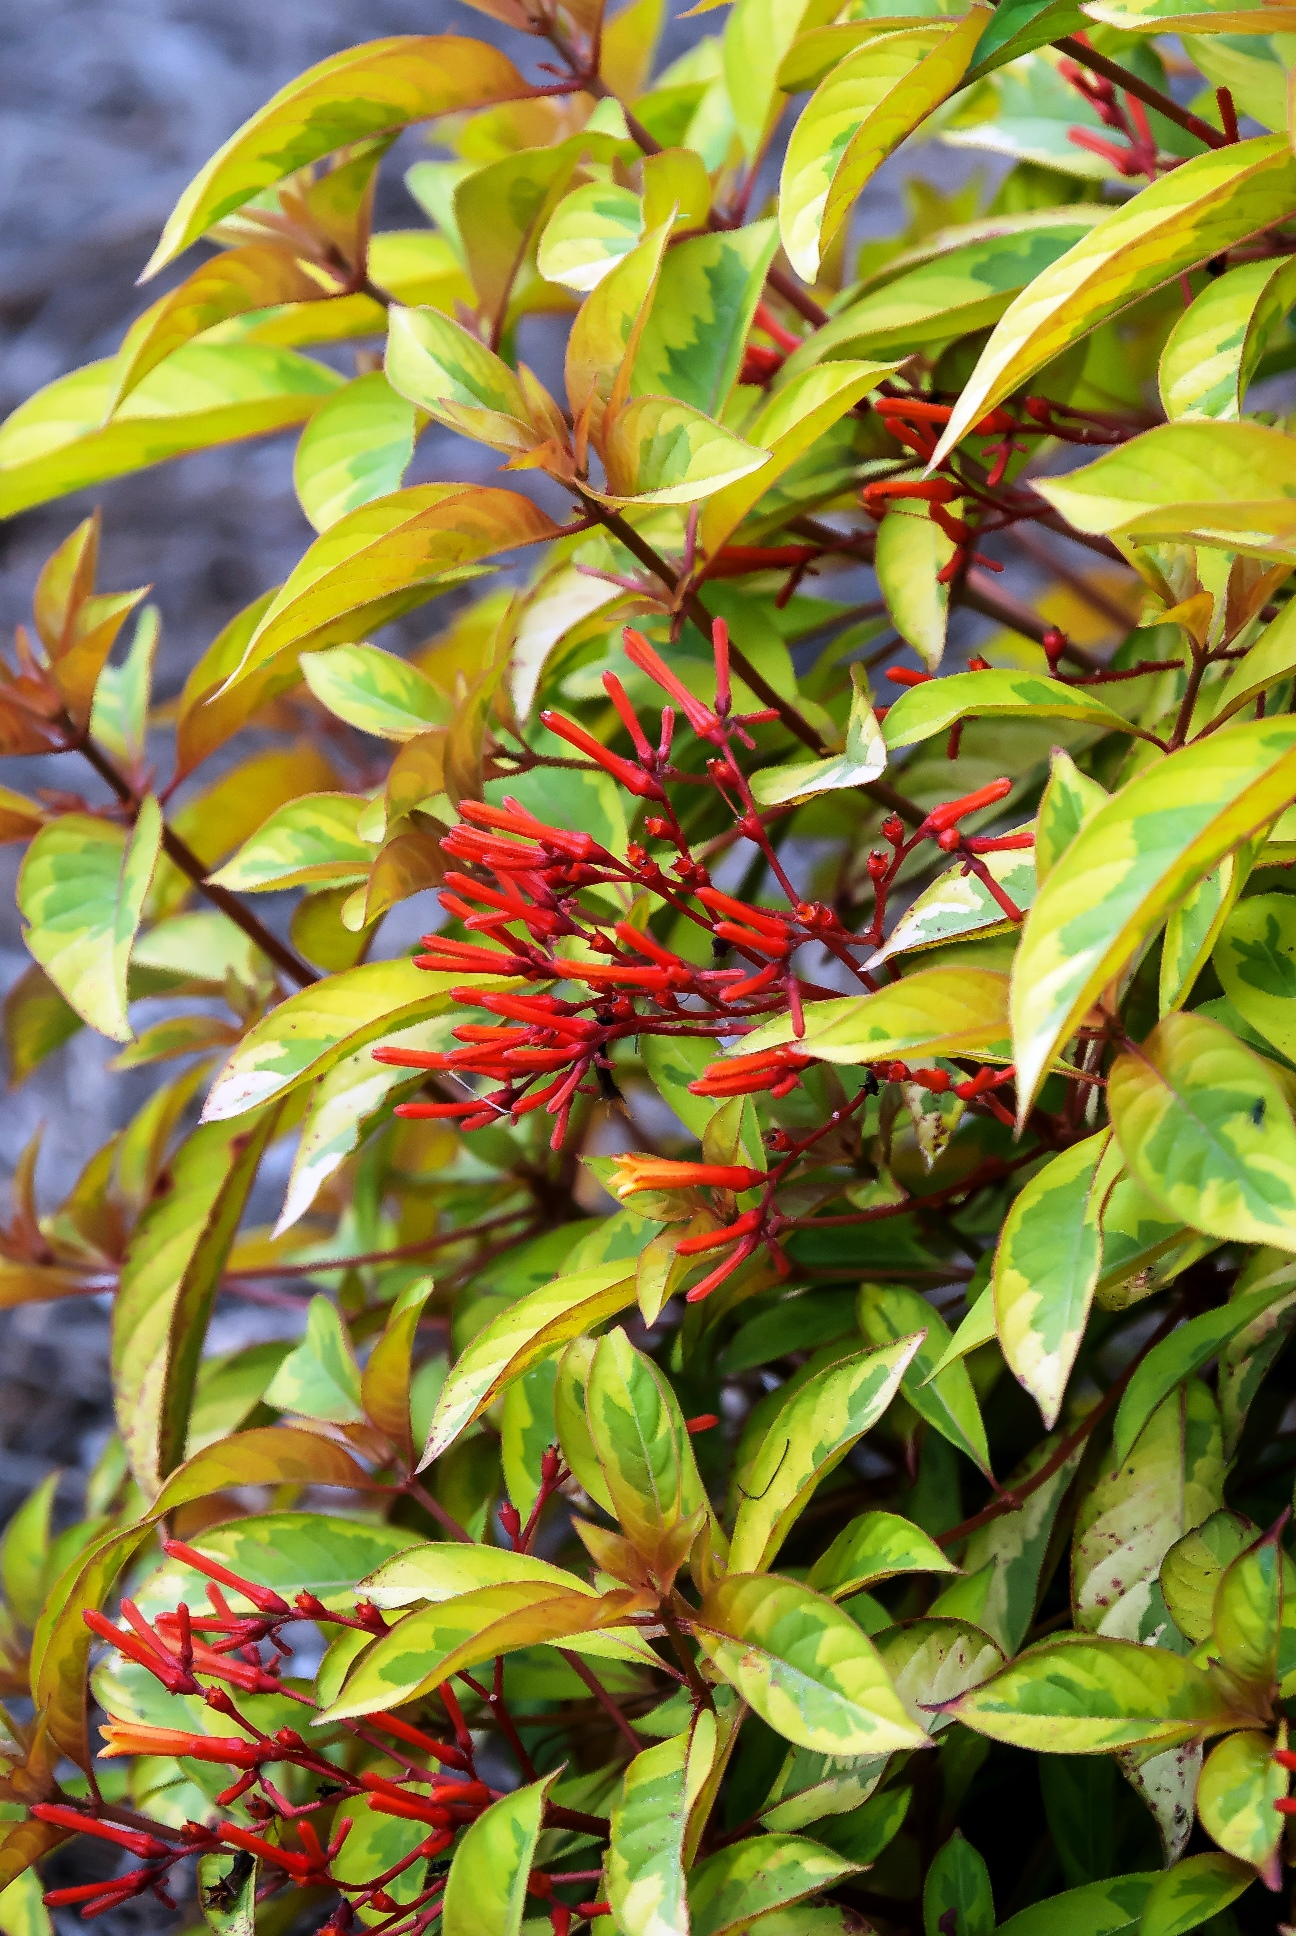 Lime Sizzler is compact and produces yellow and green variegated leaves and red-orange tubular flowers.